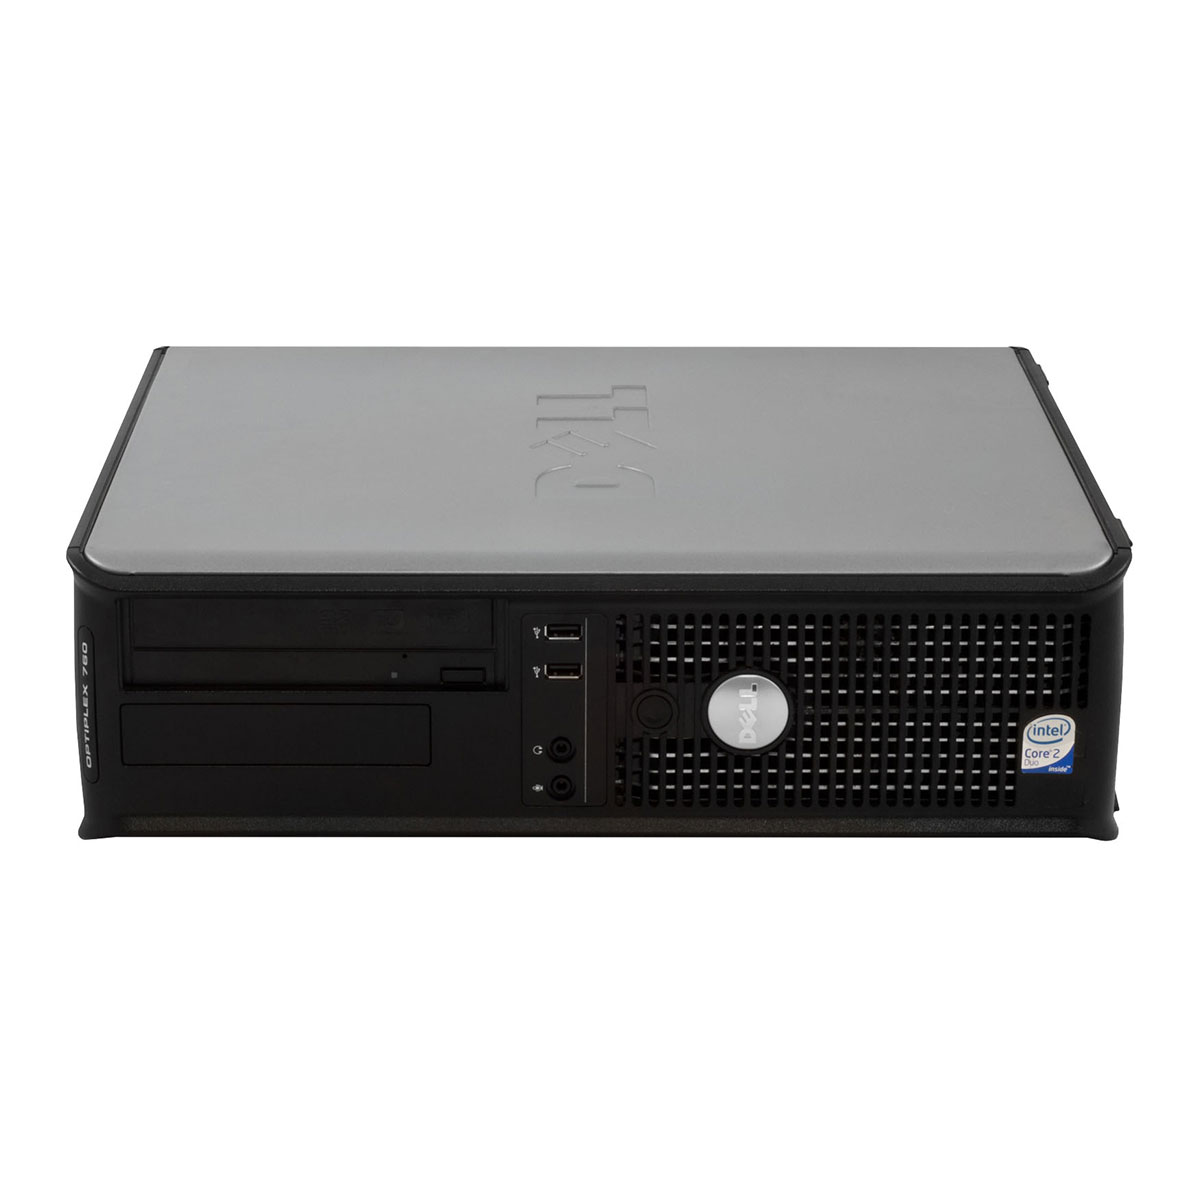 Dell Optiplex 760 Intel C2d E7500 2.93 Ghz 4 Gb Dd